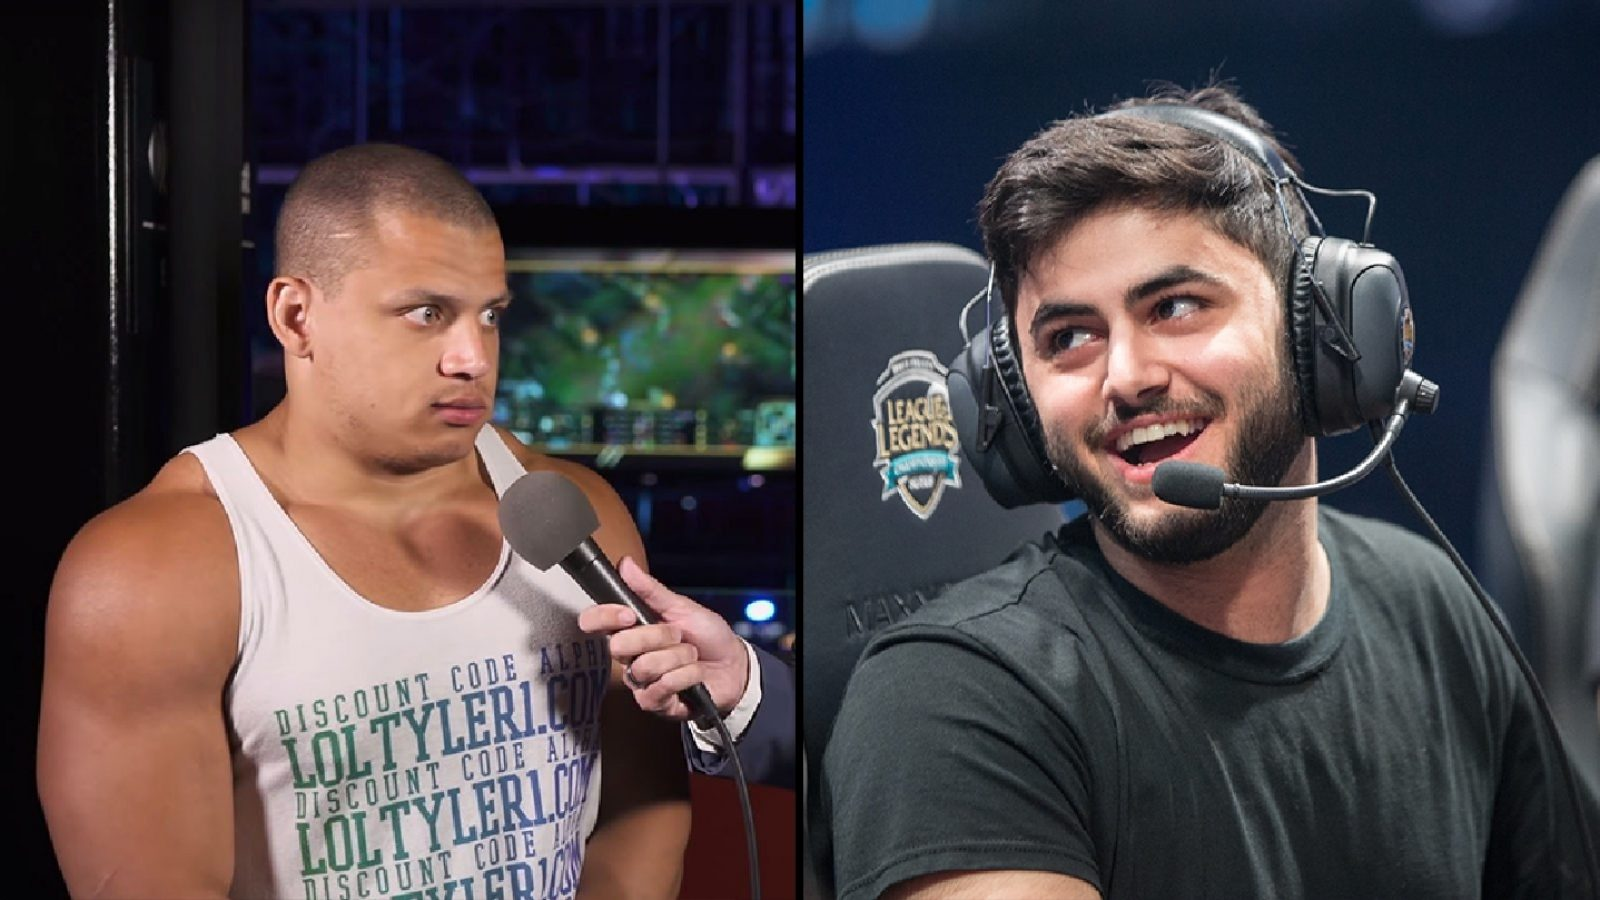 'Tyler1' and 'Yassuo' comes to blows during LoL Twitch interview